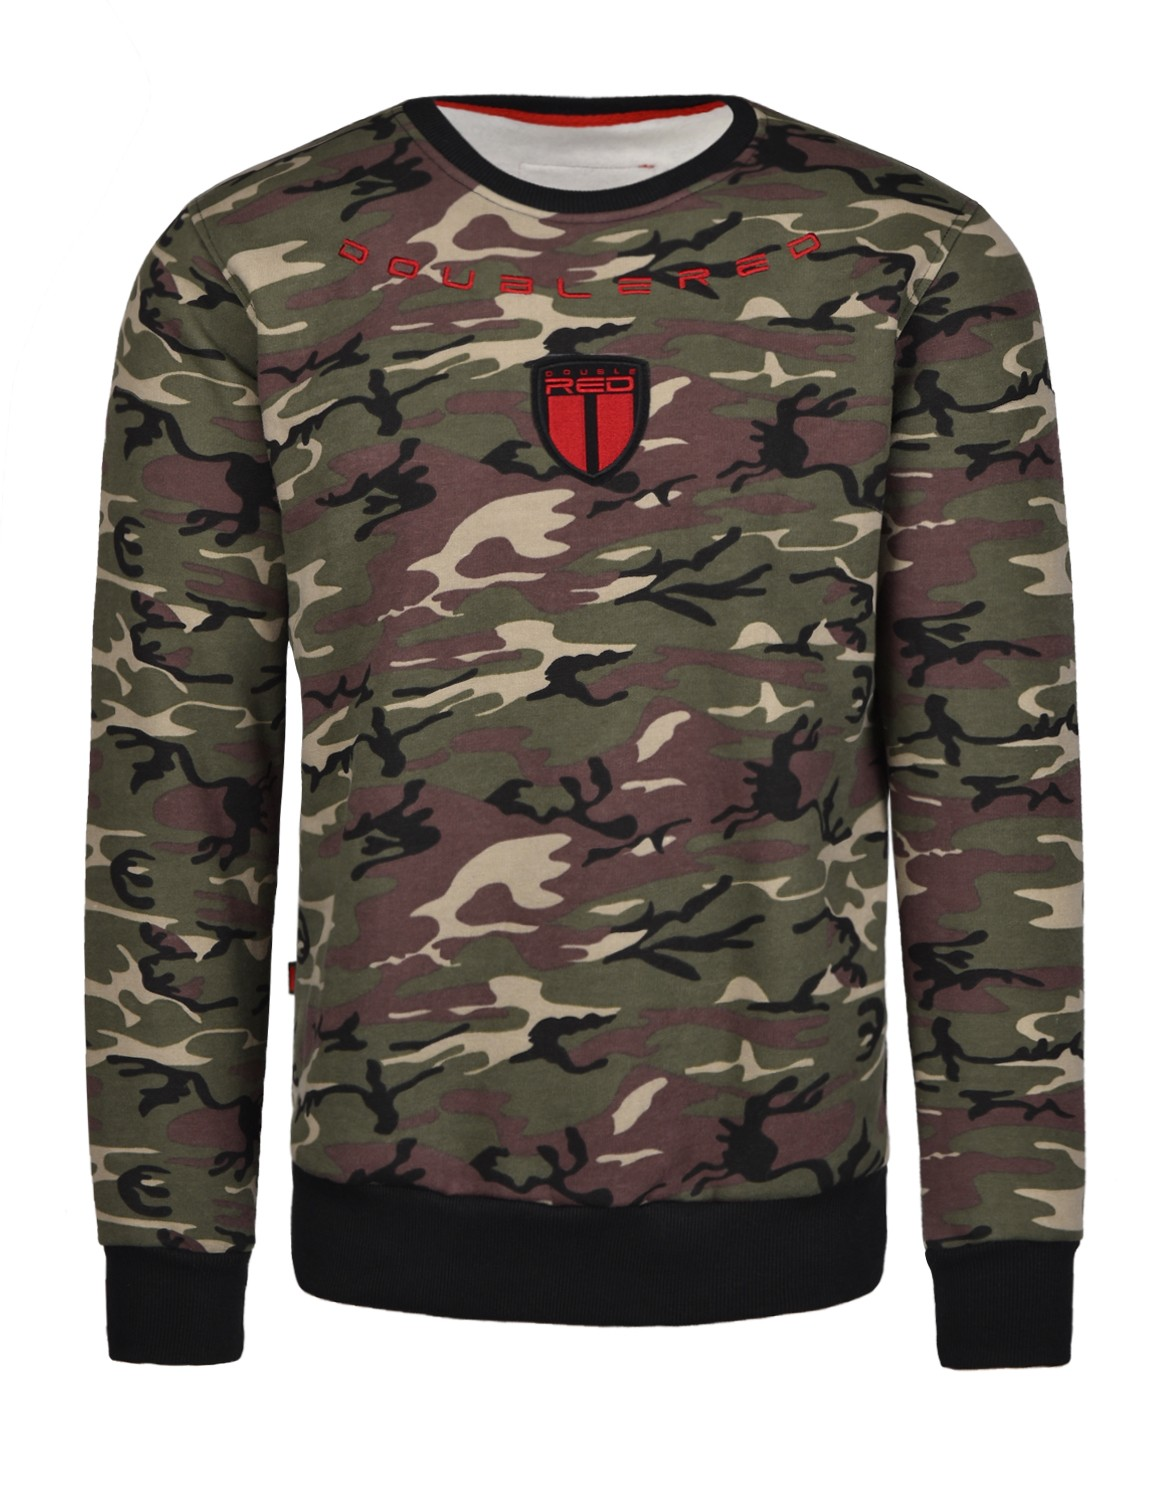 Soldier Sweatshirt Green Camo